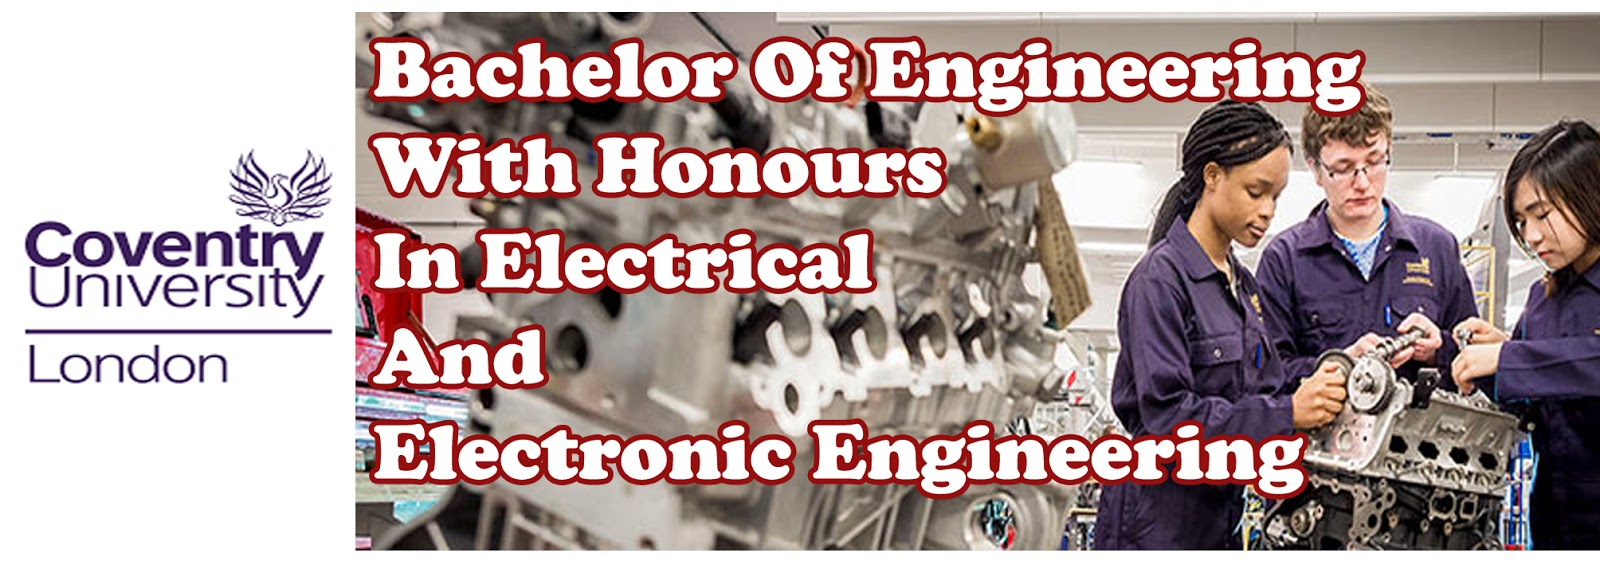 Bachelor Of Engineering With Honours In Electrical And Electronic Engineering | University of Coventry | PSB Academy Singapura